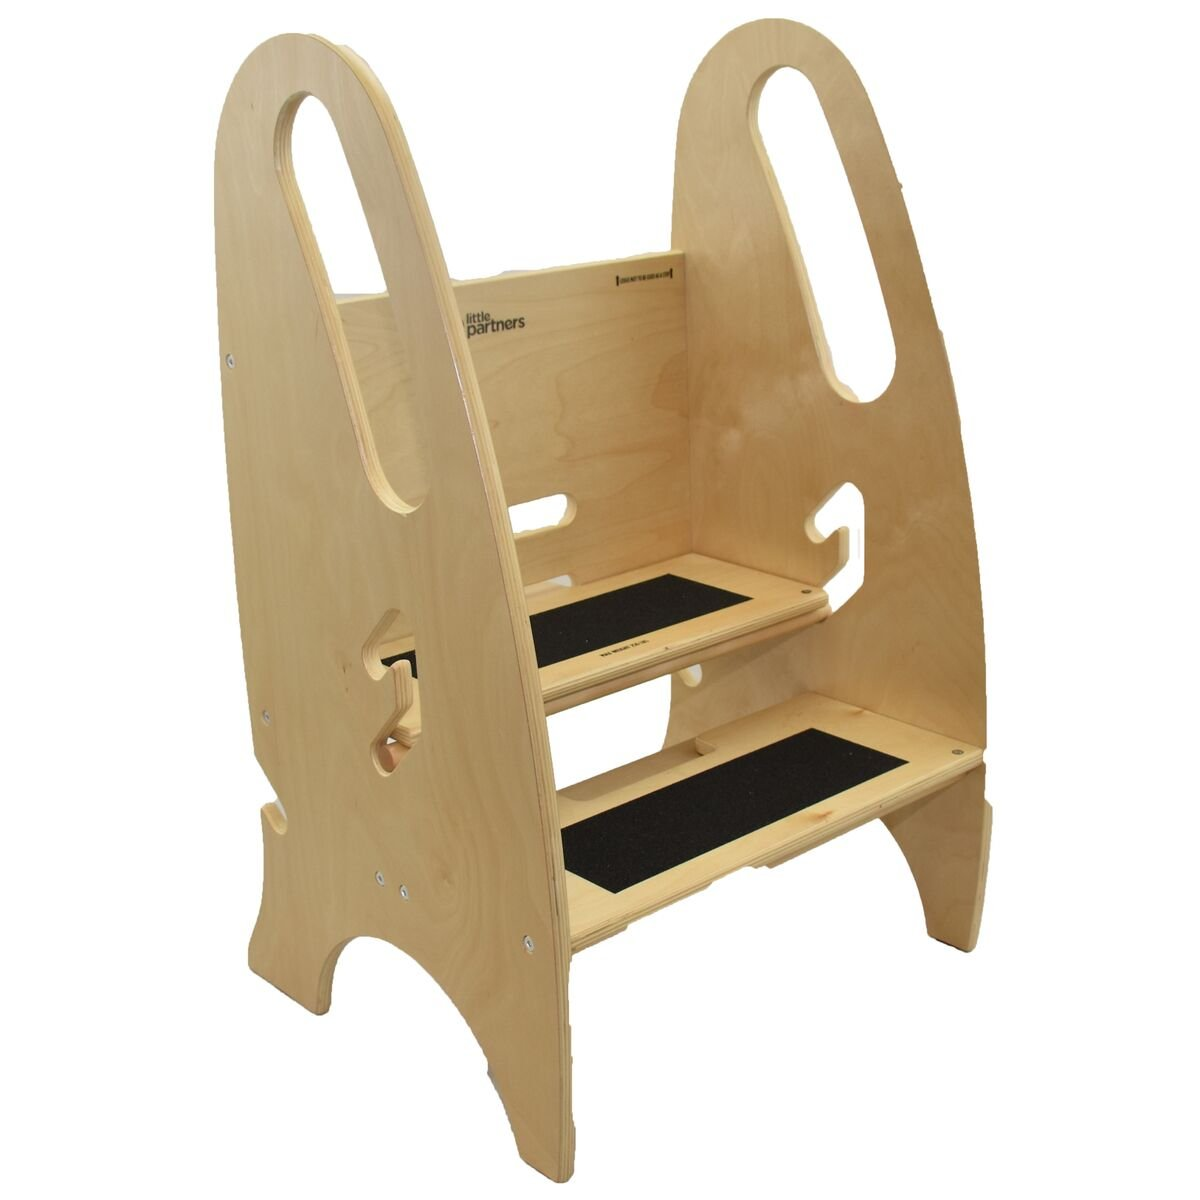 The Growing Step Stool by Little Partners (Natural) – Adjustable Height Nursery, Kitchen or Bathroom Kids Footstool – Wooden Non-Tip Design for Both Toddlers & Adults (Supports Up To 250lbs)